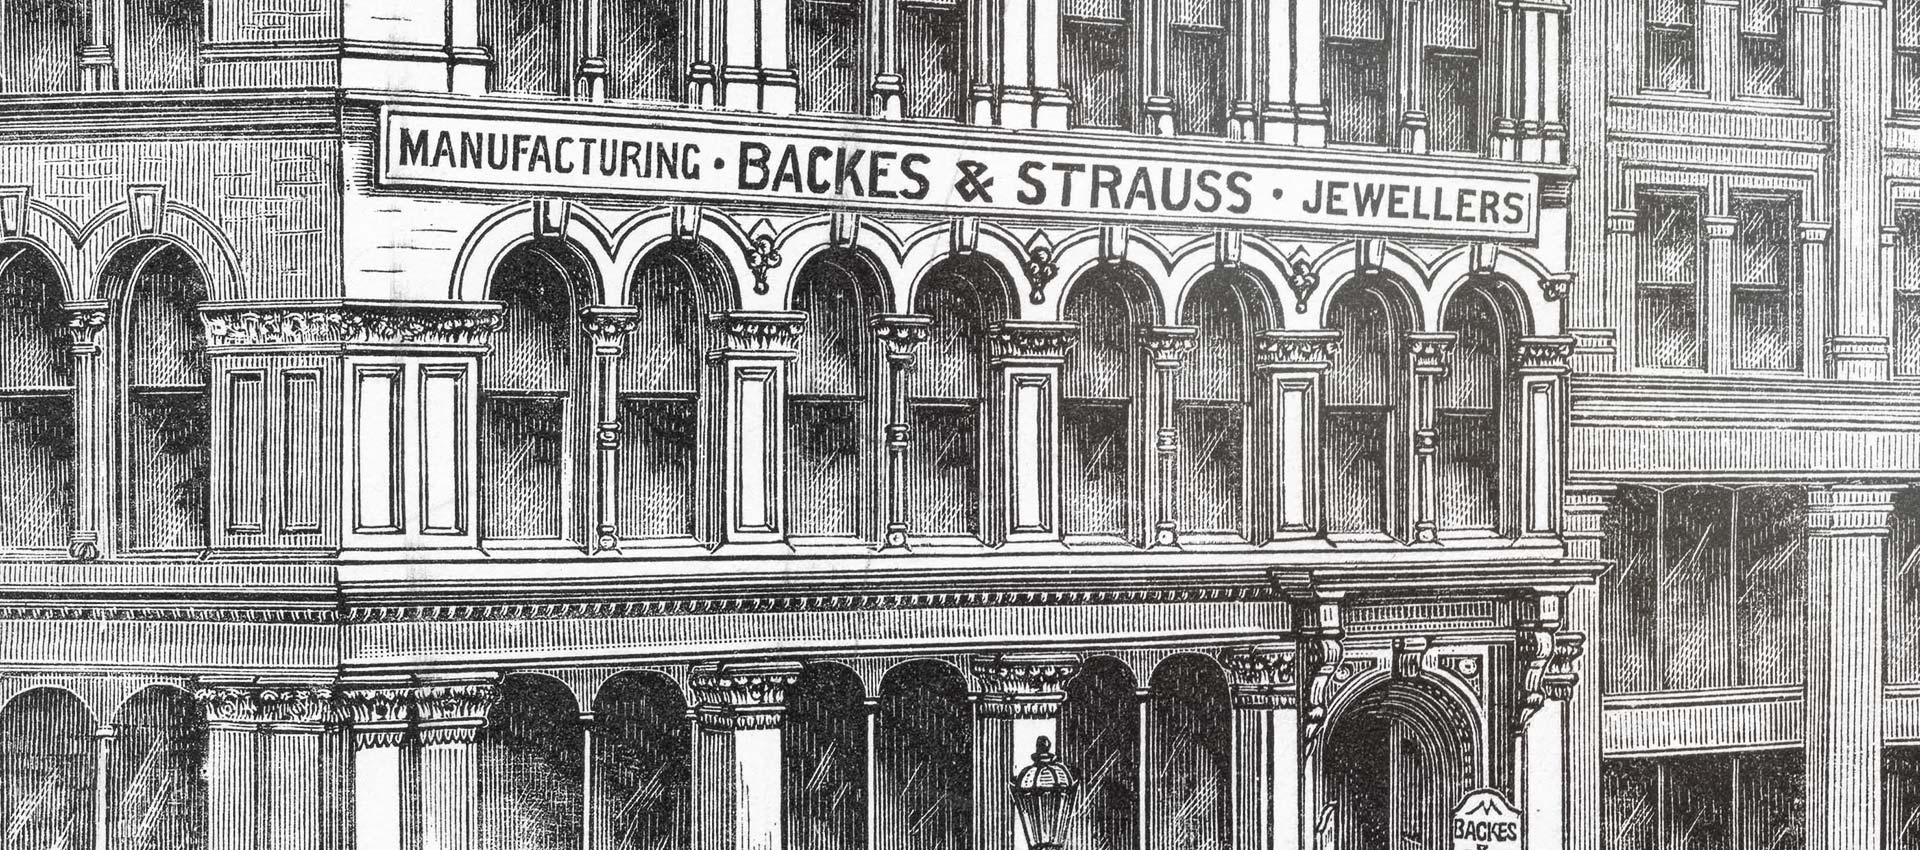 History of Backes & Strauss in craftsmanship and diamond making